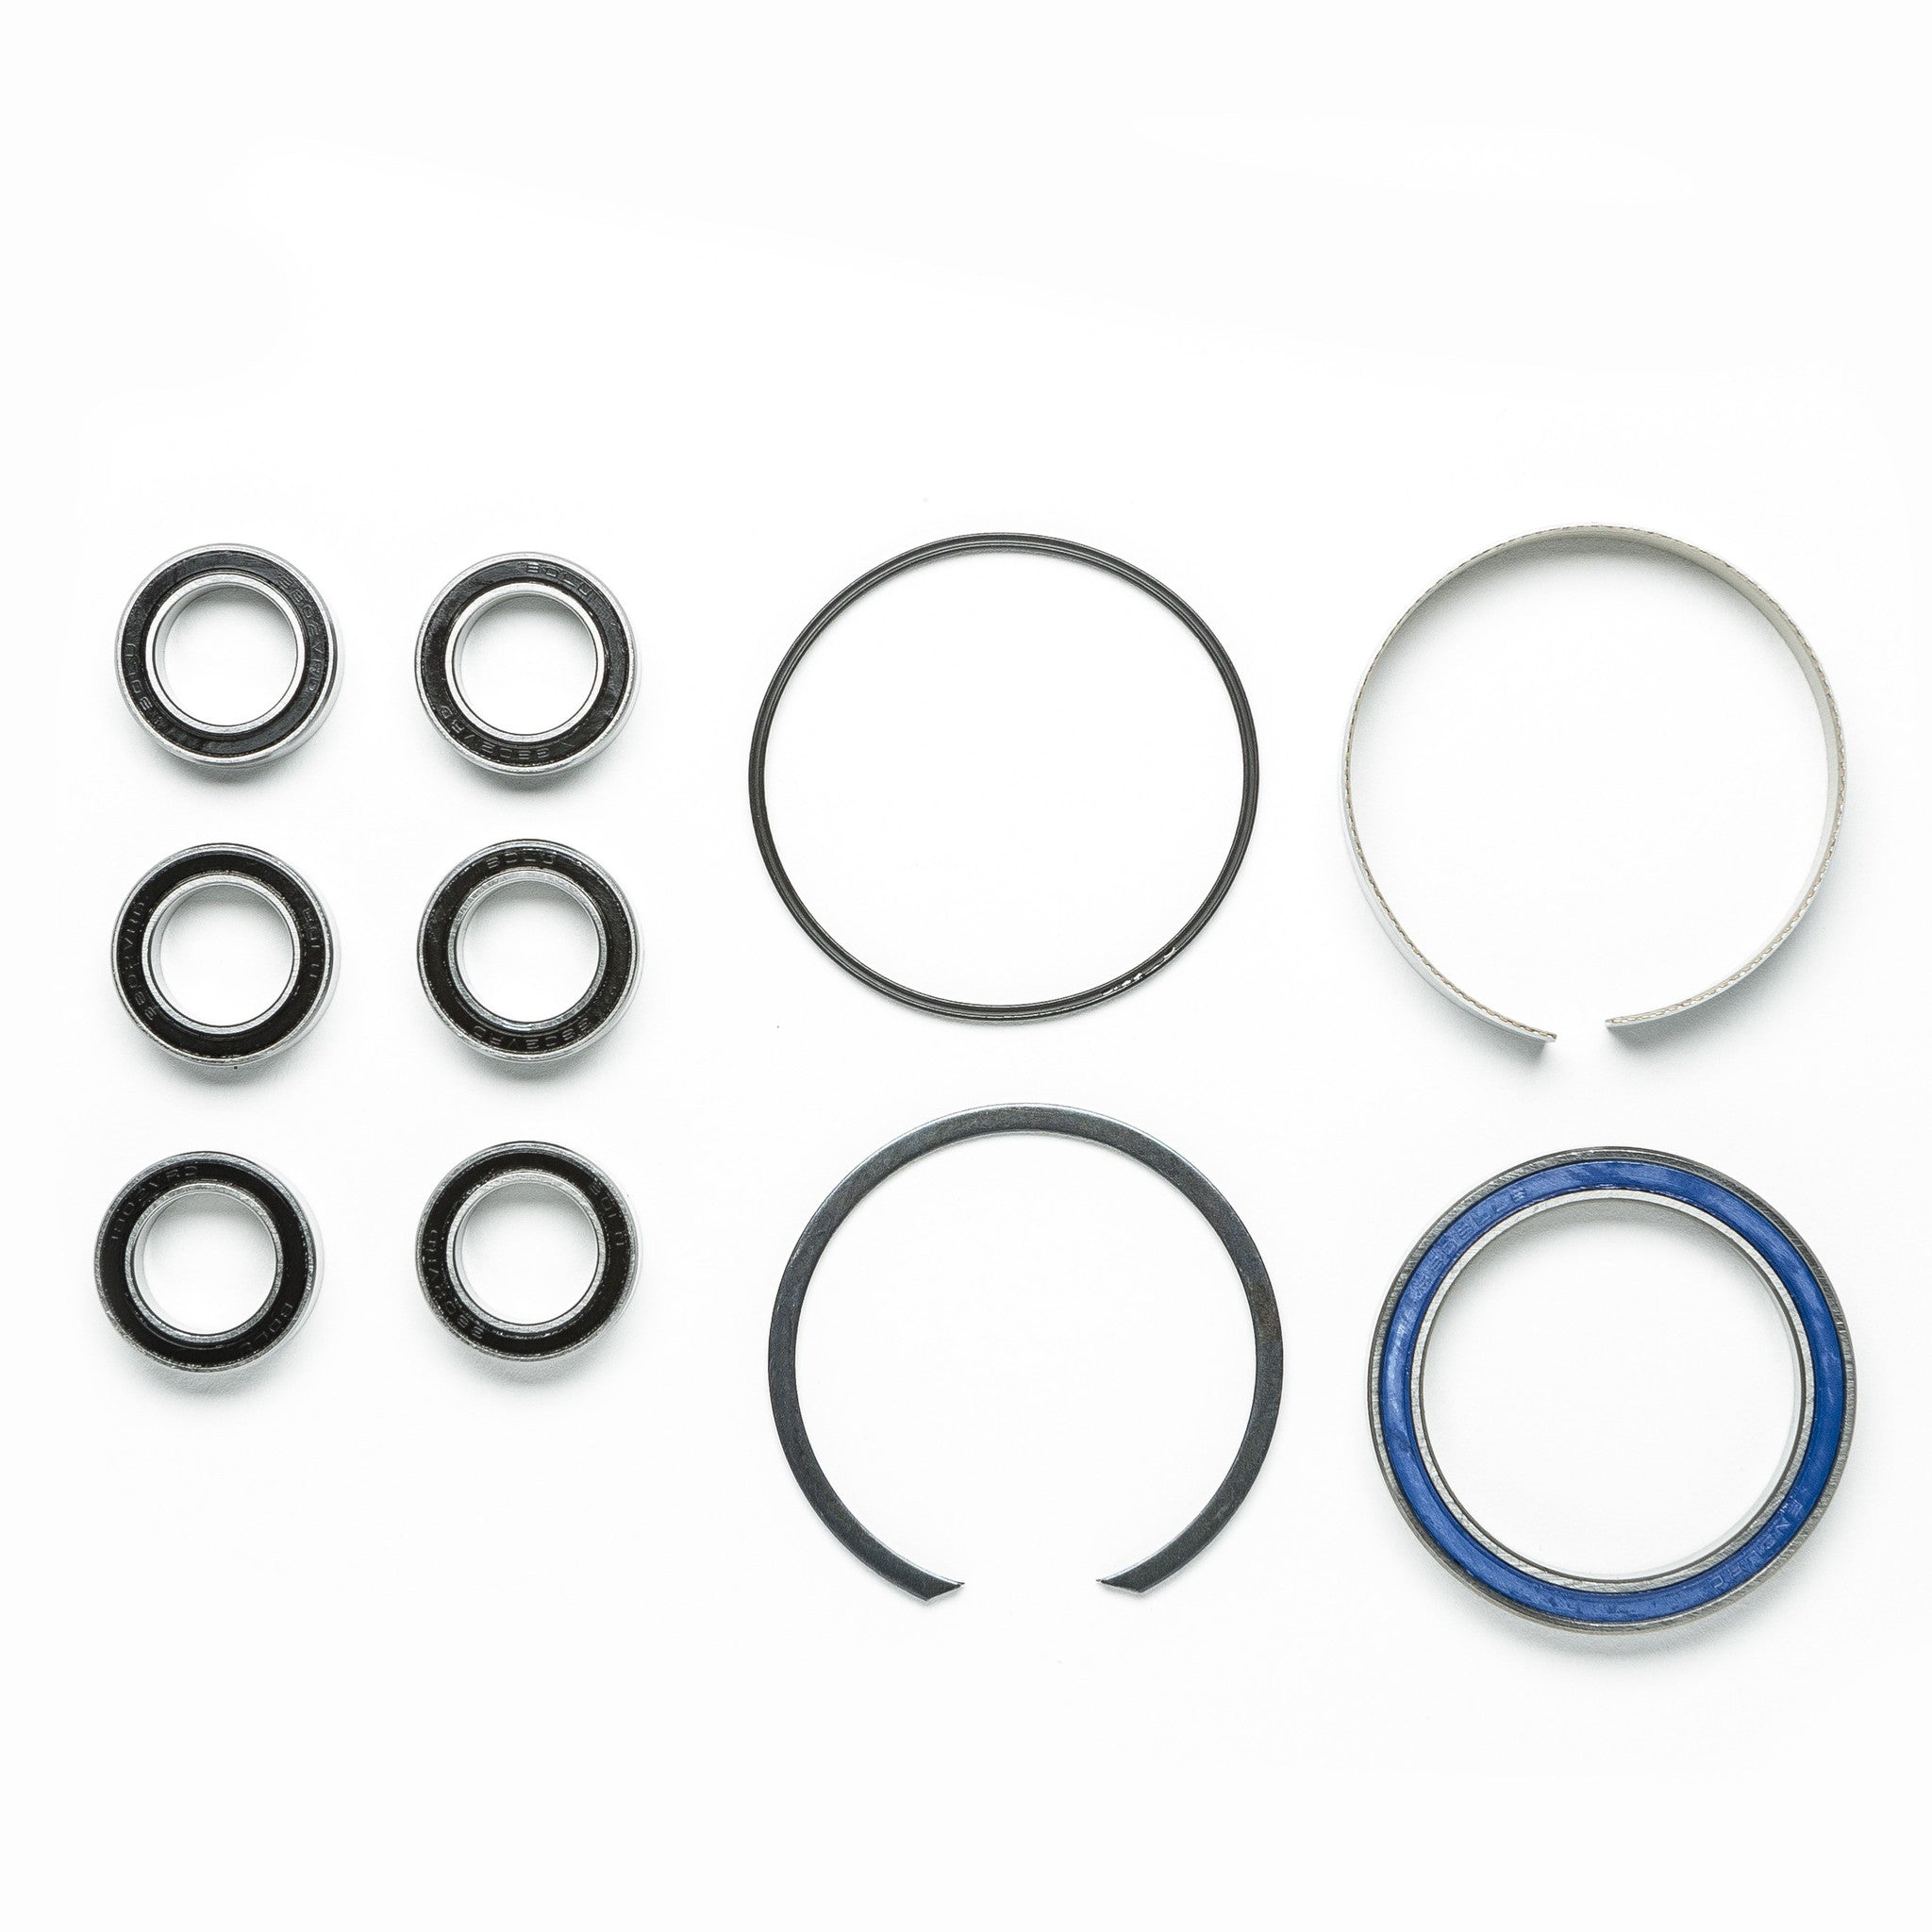 Yeti Parts - SB95-C Bearing Rebuild Kit